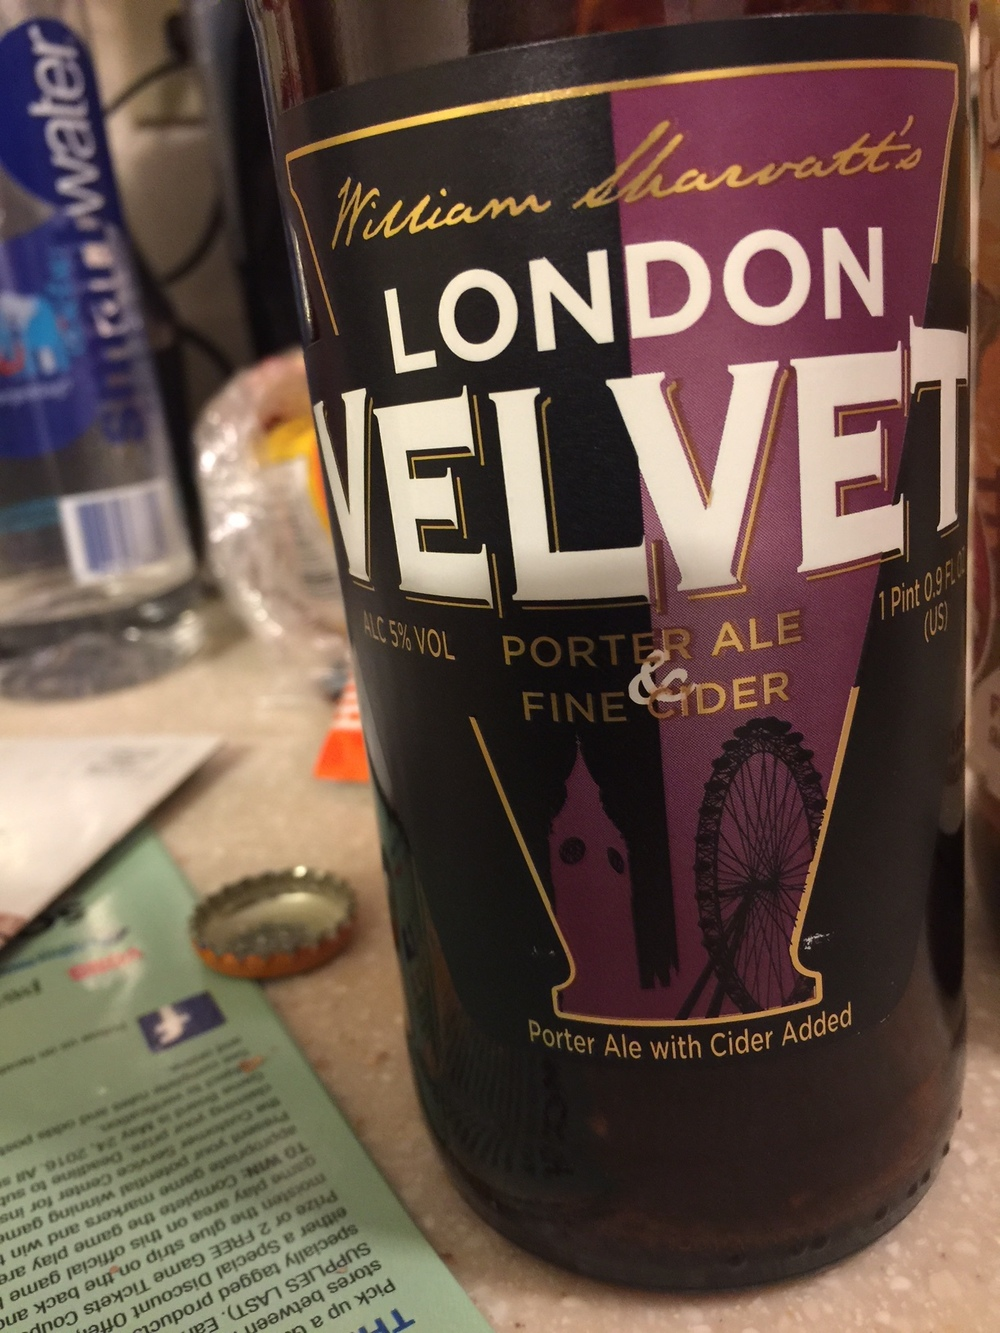 London Velvet Porter and Cider   A surprisingly flavored beer, the initial taste had an overwhelming contrast of flavors and at first was a little off putting. After you get used to it, its an alright beer, but a bit of an acquired taste.  Ratings:  Josh: 4.5/10  Wook: 3/10  Average: 3.5/10